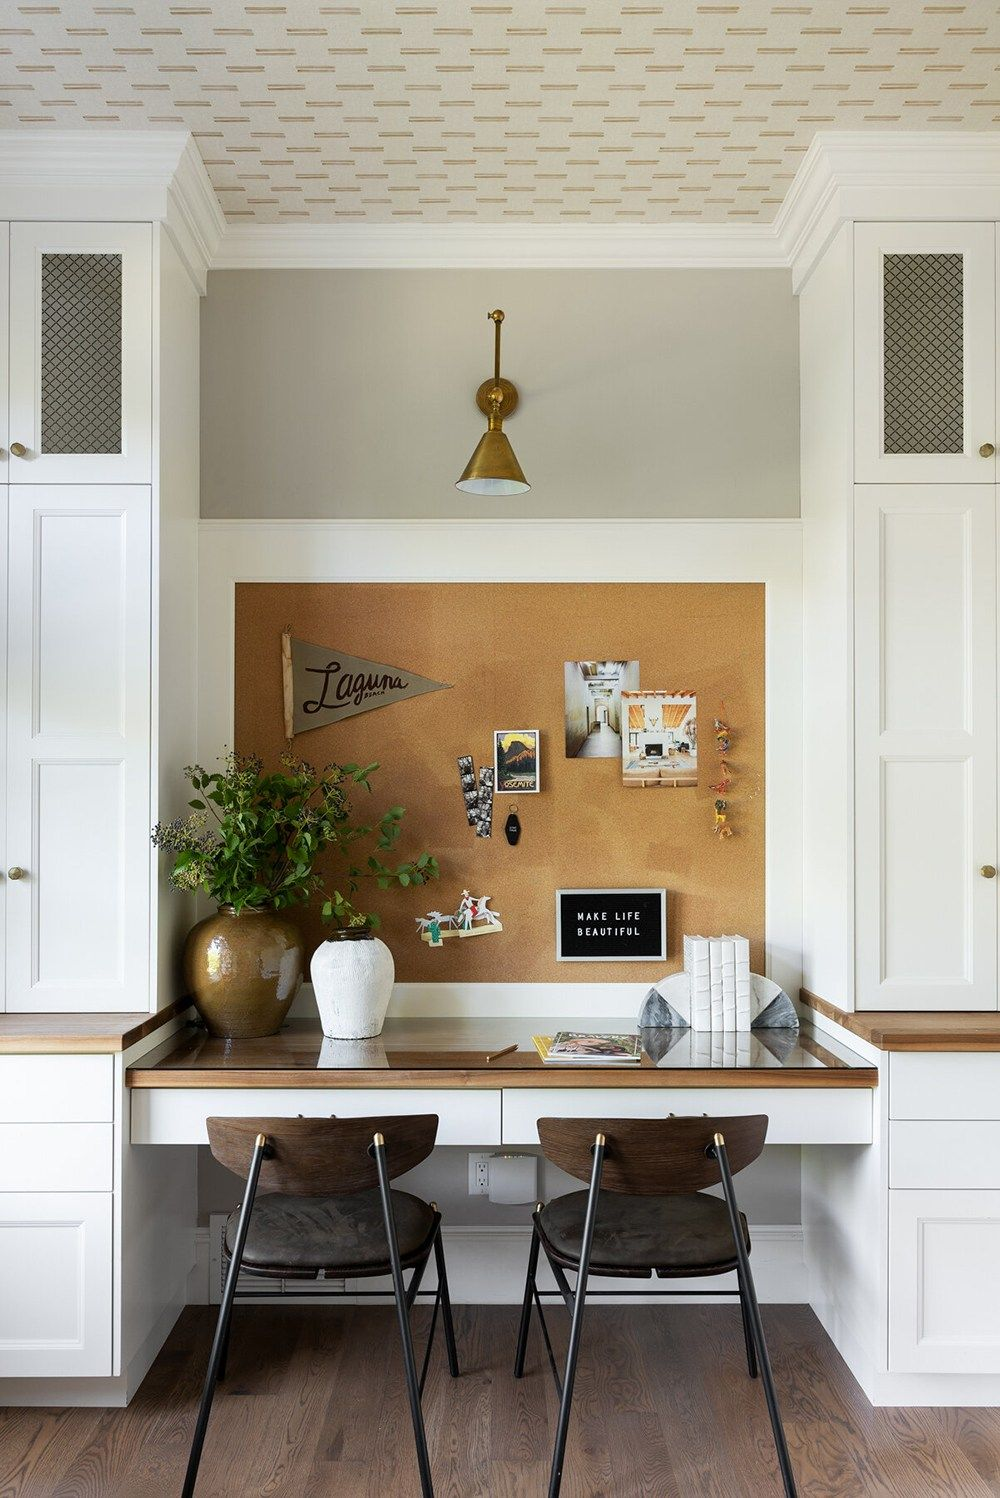 10 Pins Pinterest Inspiration Room For Tuesday Blog In 2020 Home Office Design Interior Design Kitchen Home Remodeling